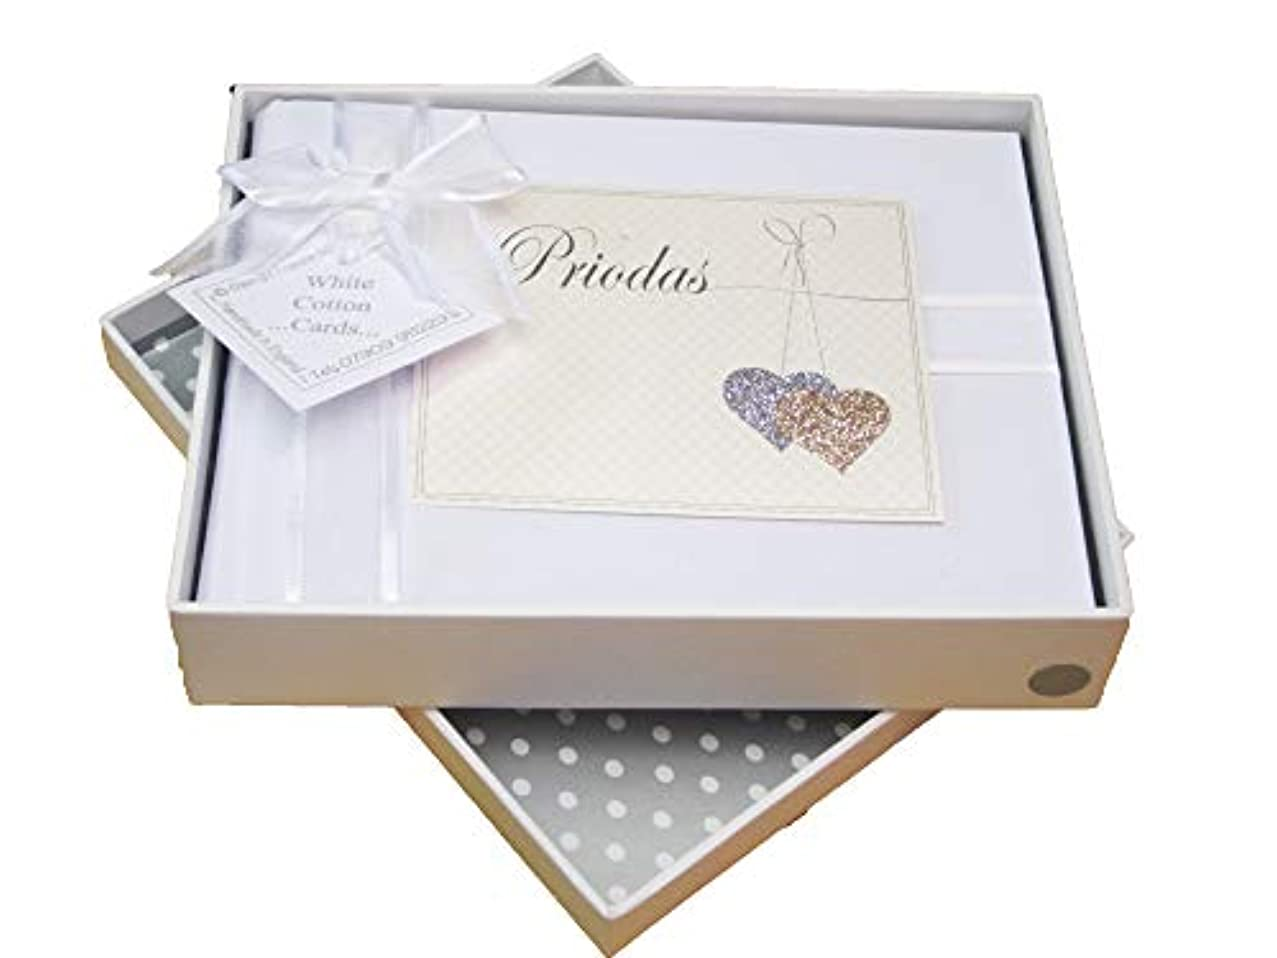 White Cotton Cards 'Priodas' Welsh Wedding Photo Album, Love Hearts (WLLH1S)